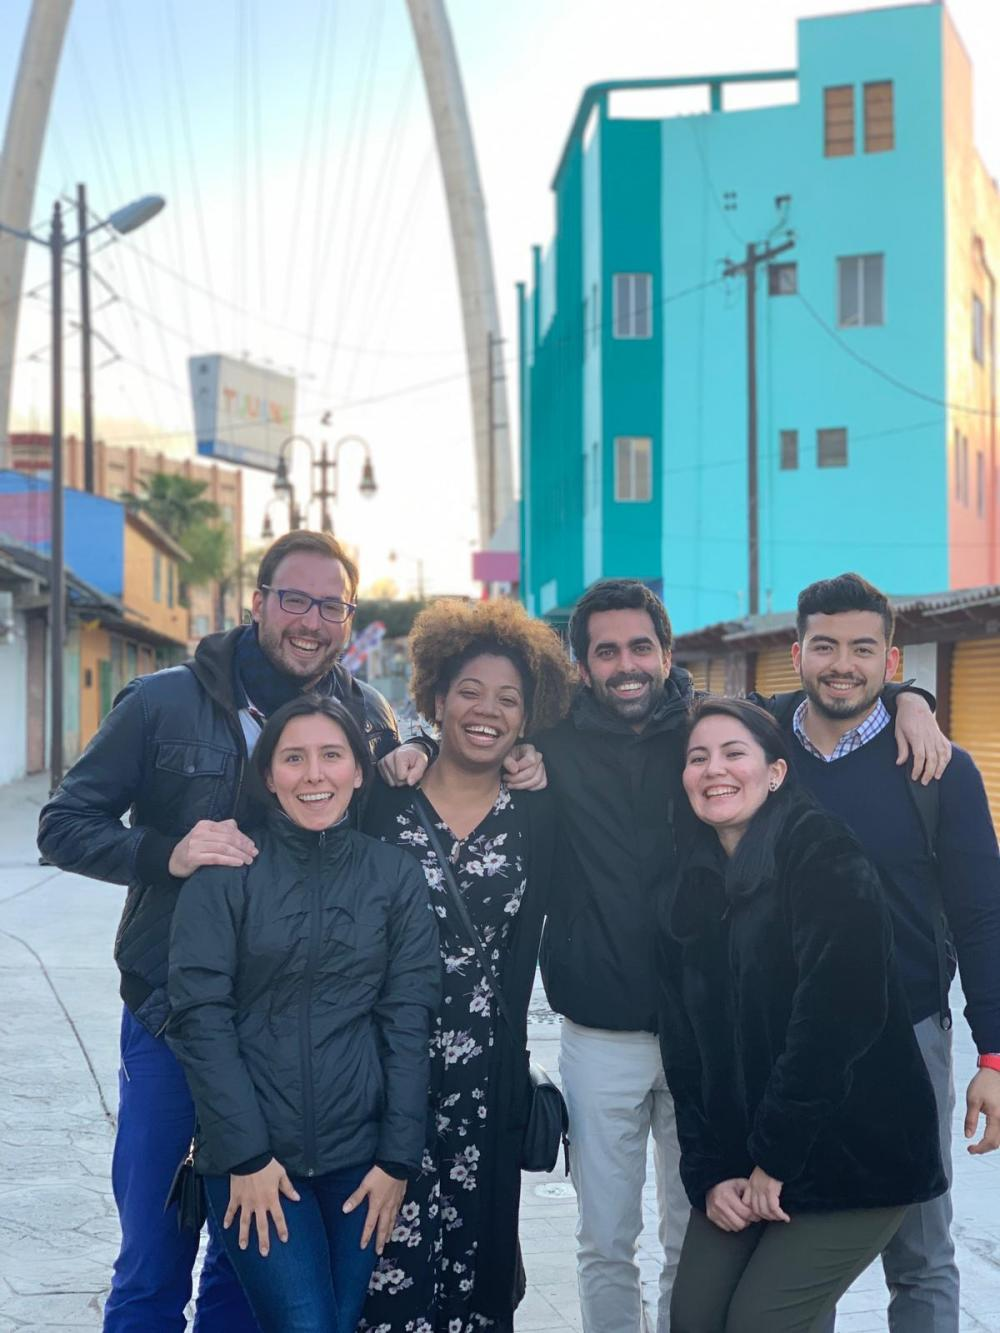 Six students pose in front of a teal building in Tijuana.